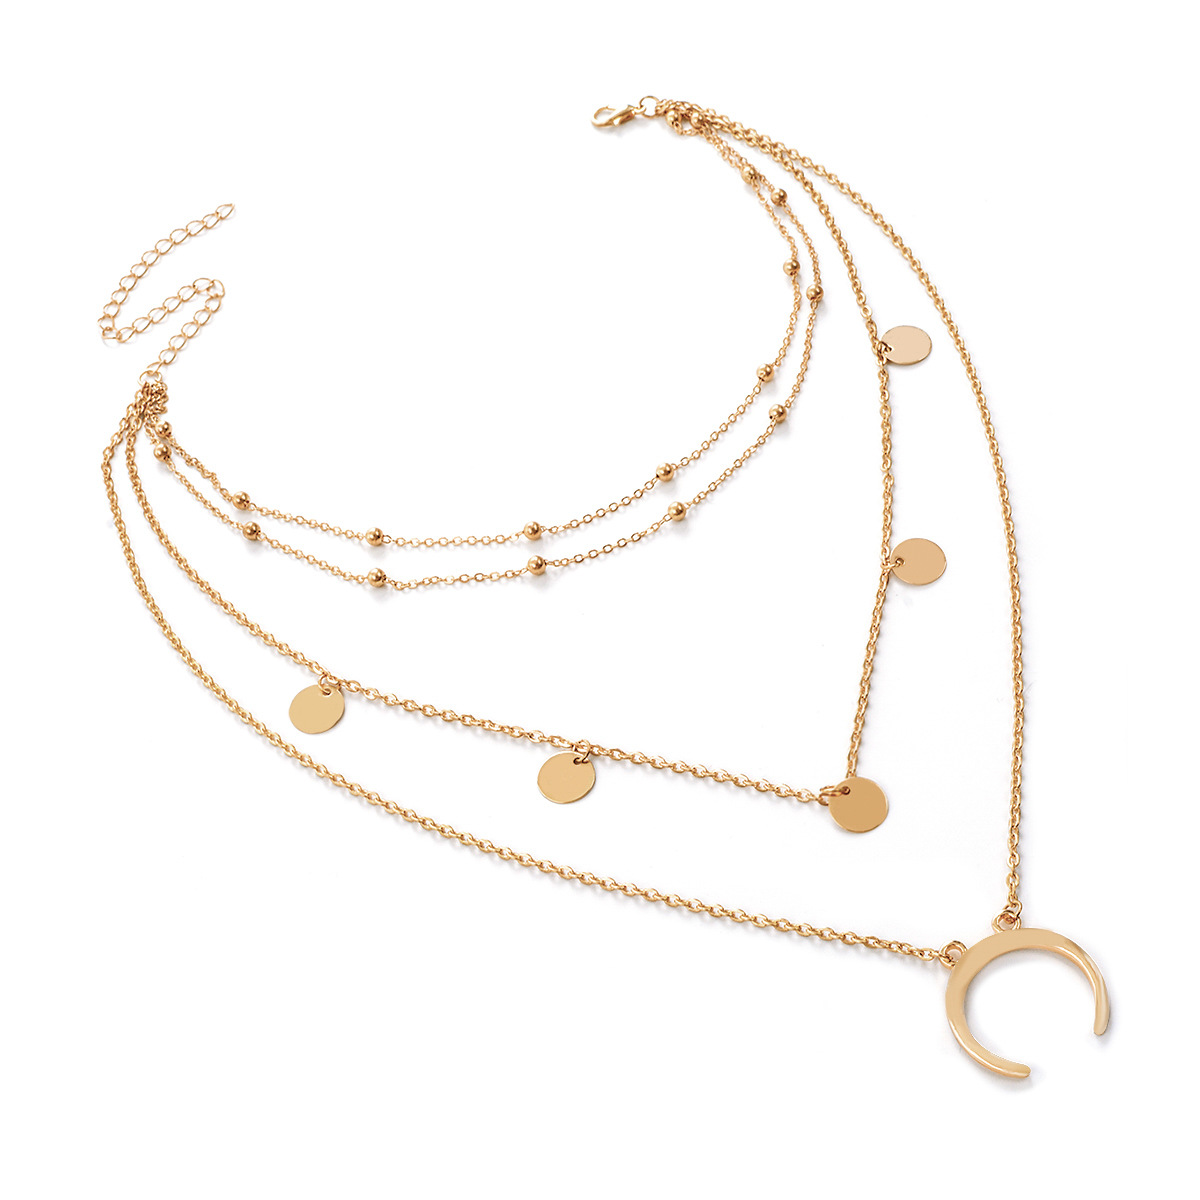 Occident and the United States alloy plating Necklace Set (C2180 silver)NHXR1448-C2180 silver